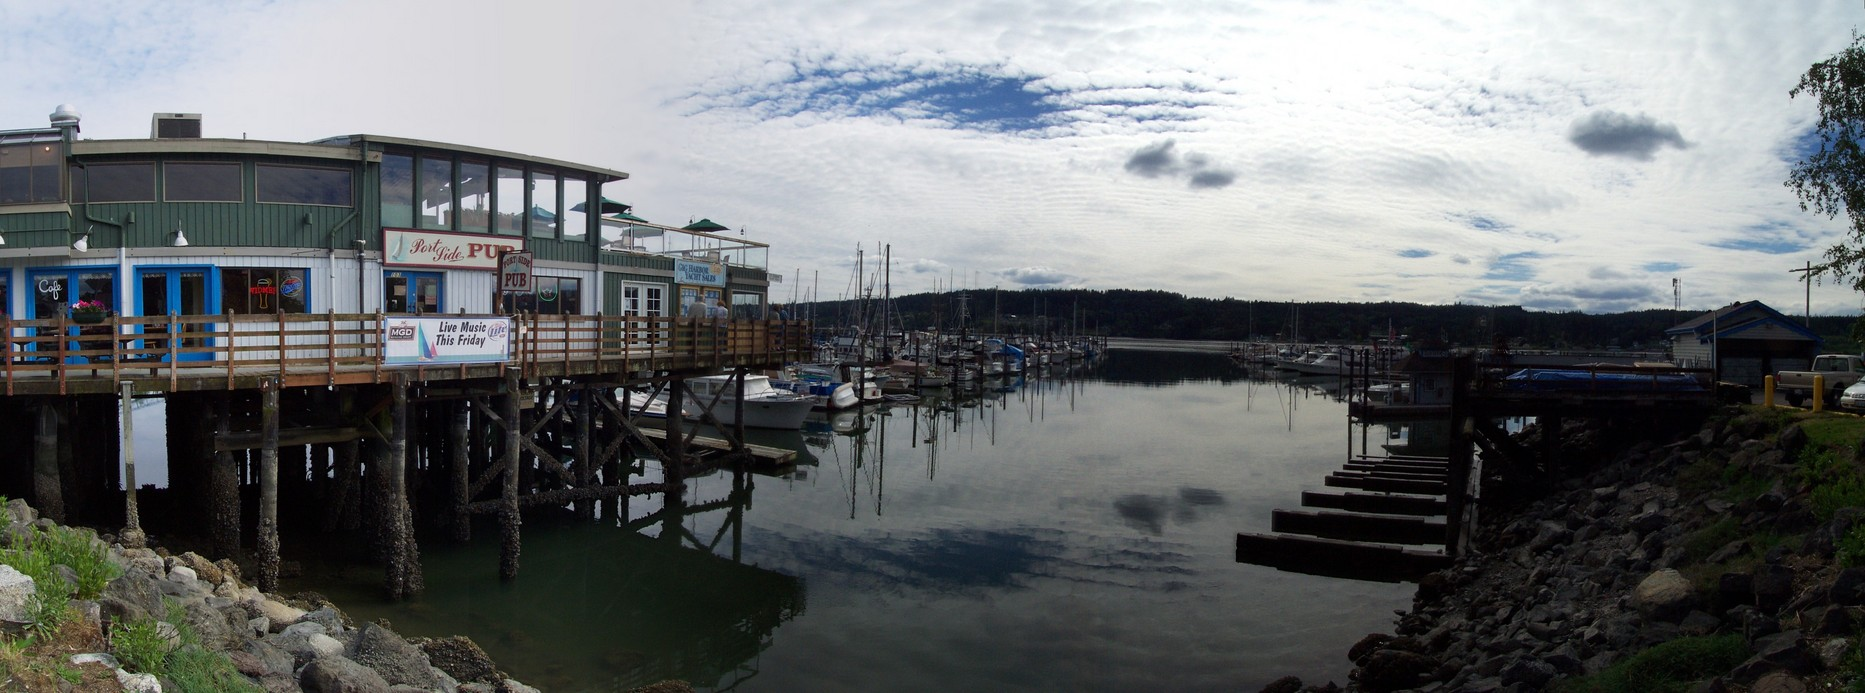 panoramic_poulsbo_180.jpg